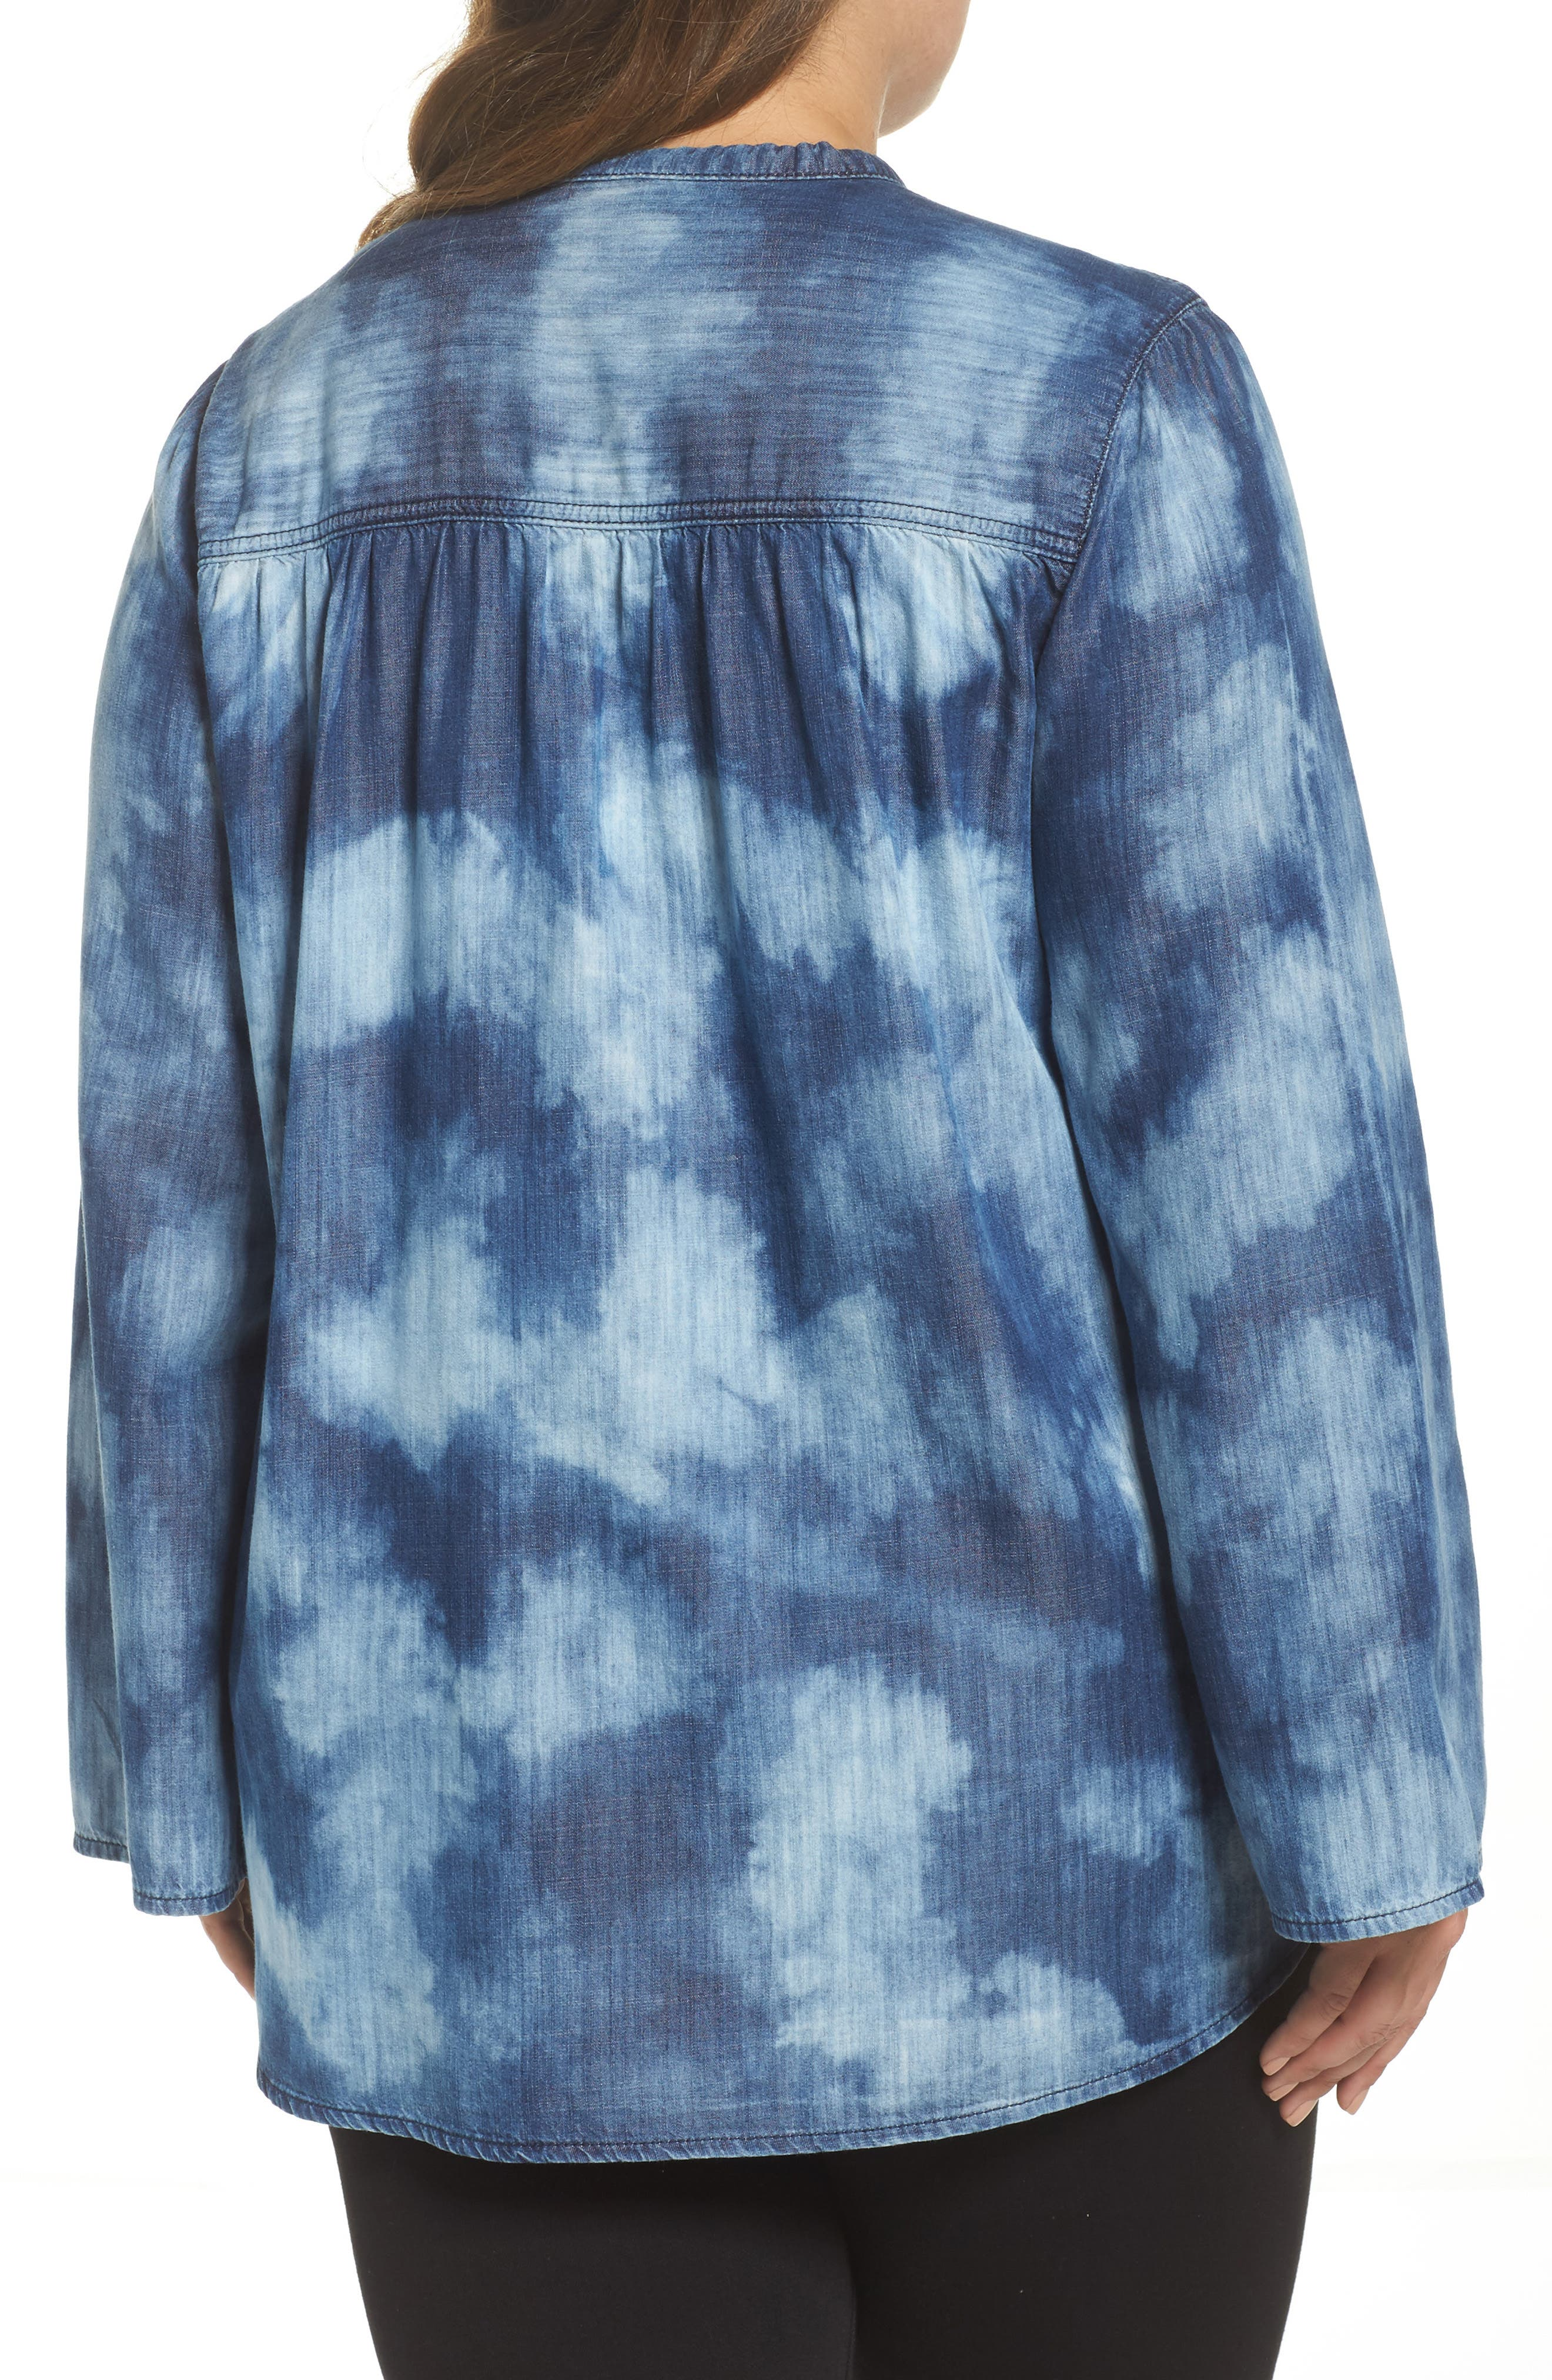 Bell Sleeve Top,                             Alternate thumbnail 2, color,                             422